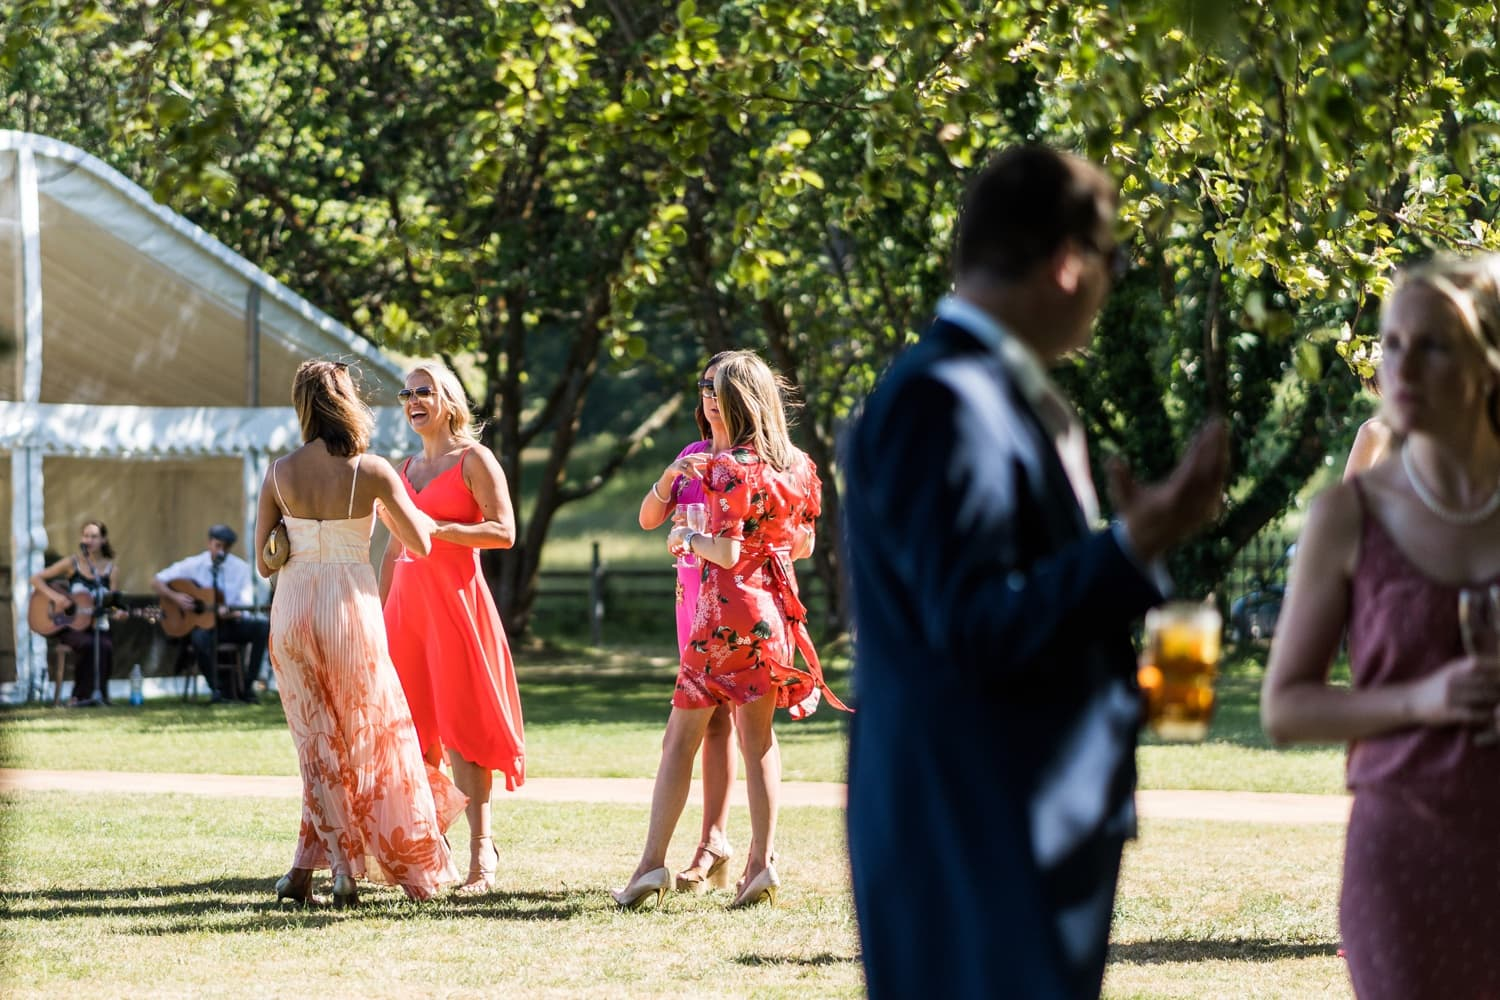 Wedding reception at the Glanusk Park Estate in South Wales